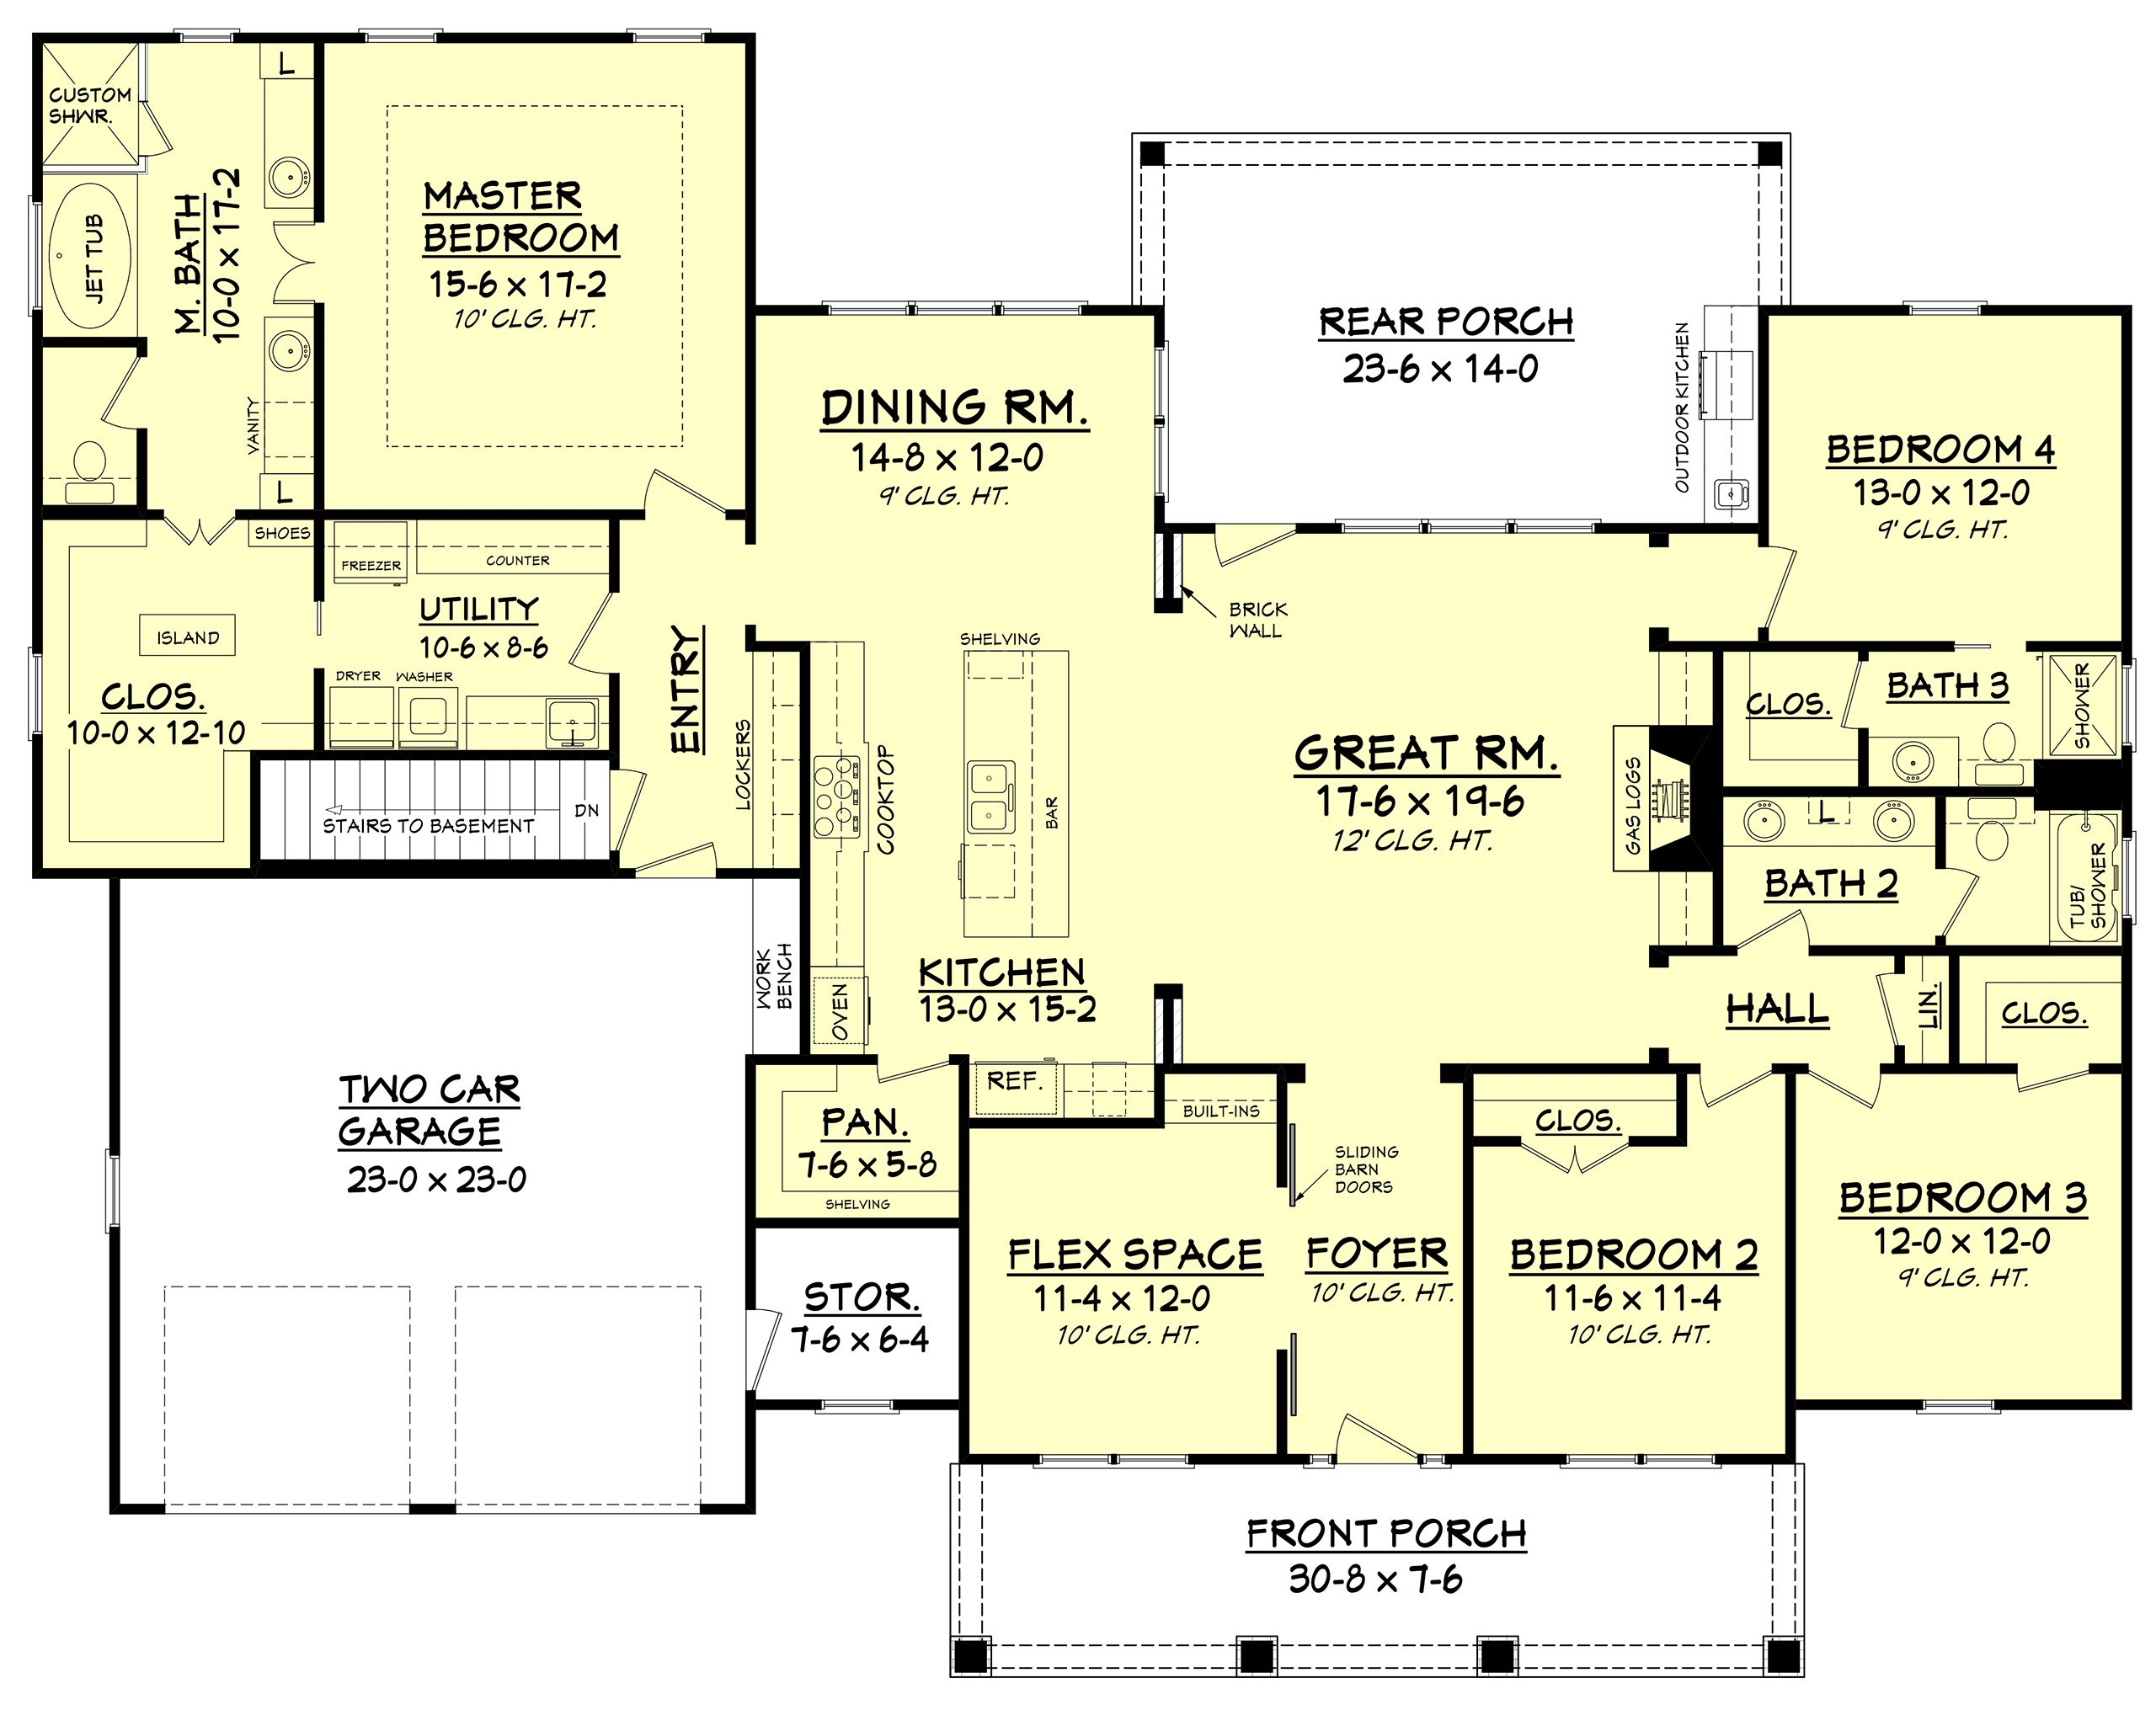 Craftsman style house plan 4 beds 3 baths 2639 sq ft for House plan search